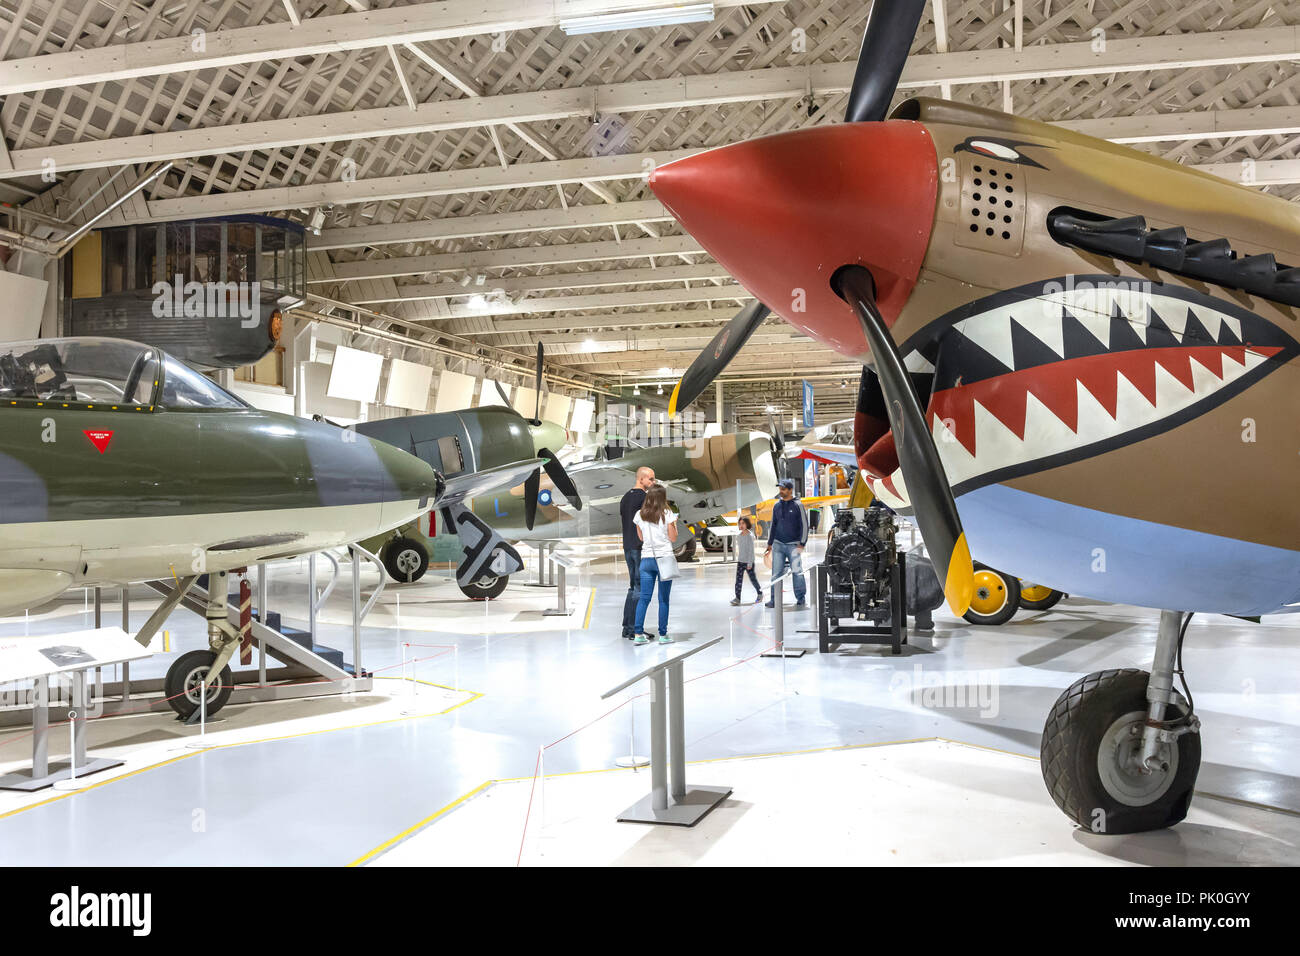 Curtis Kittyhawk II ground-attack fighter Royal Air Force Museum, Colindale, London Borough of Barnet, Greater London, England, United Kingdom - Stock Image